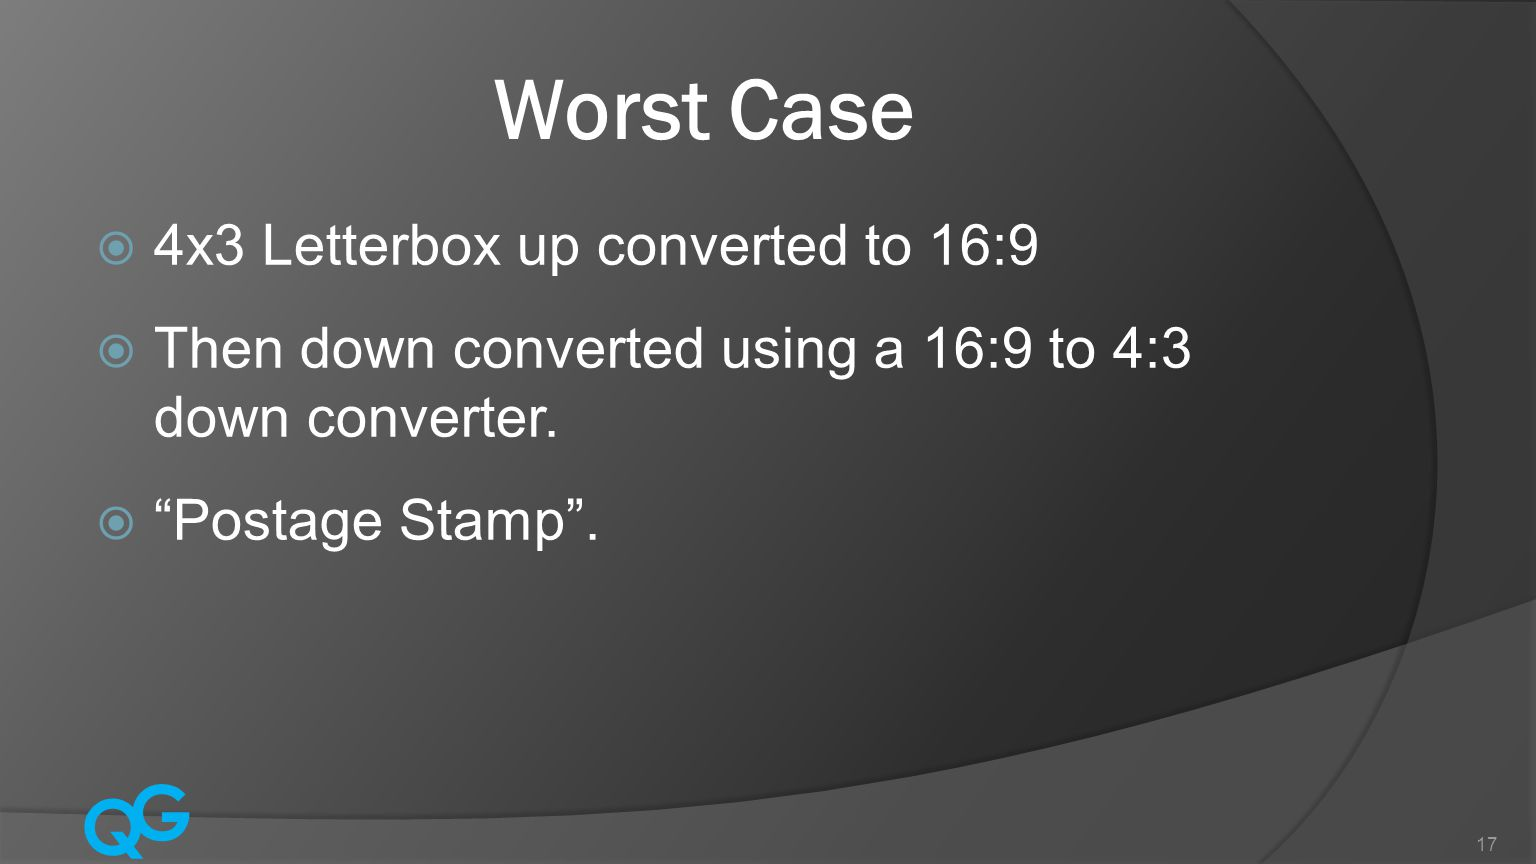 Worst Case 4x3 Letterbox up converted to 16:9